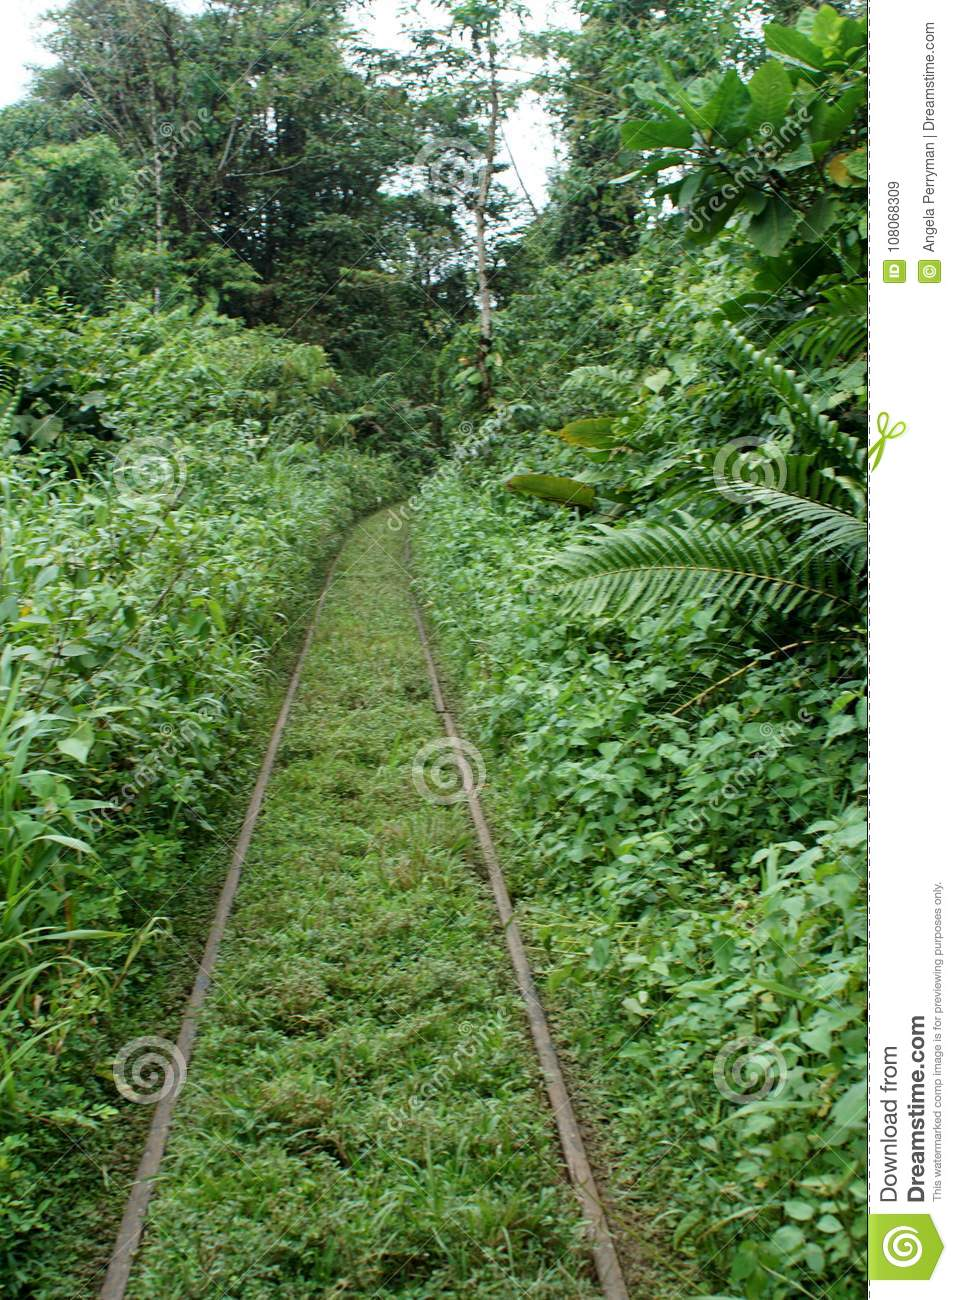 Abandoned Train Tracks In The Jungle Stock Image - Image of